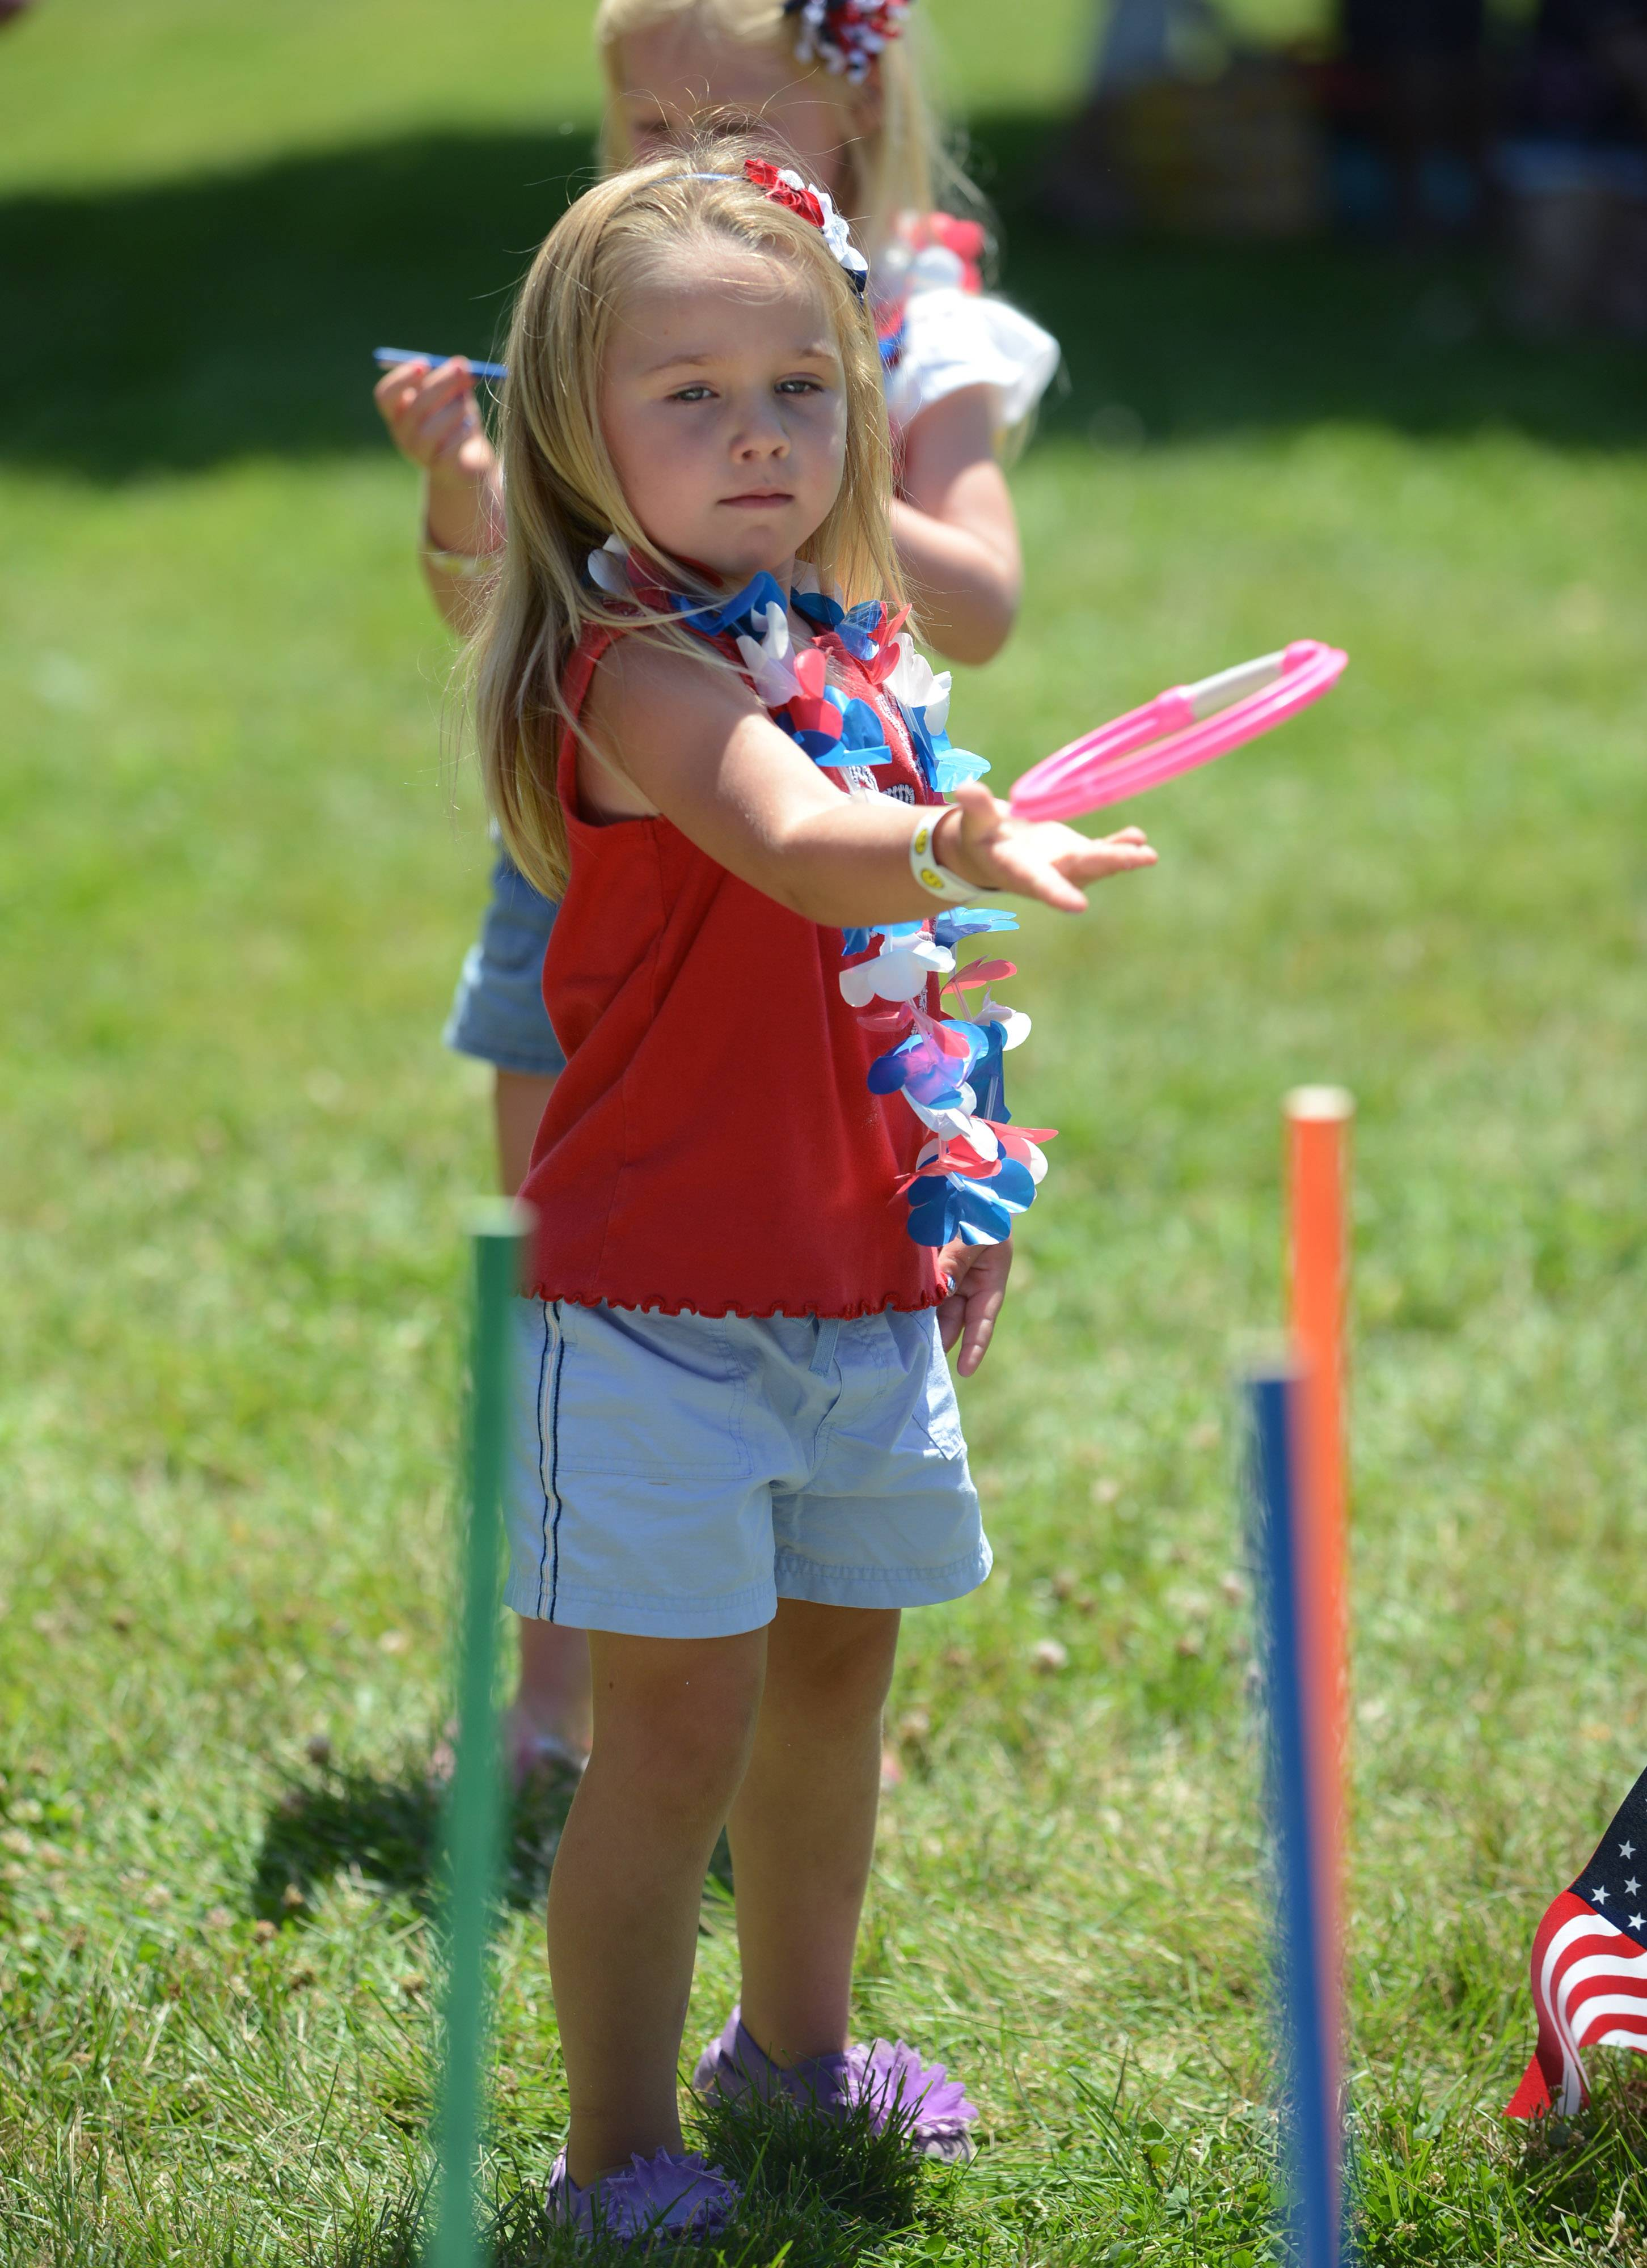 Elizabeth Krause, 4 of Lake Zurich, plays a ring toss game during the Fourth of July family day in Paulus Park Friday.